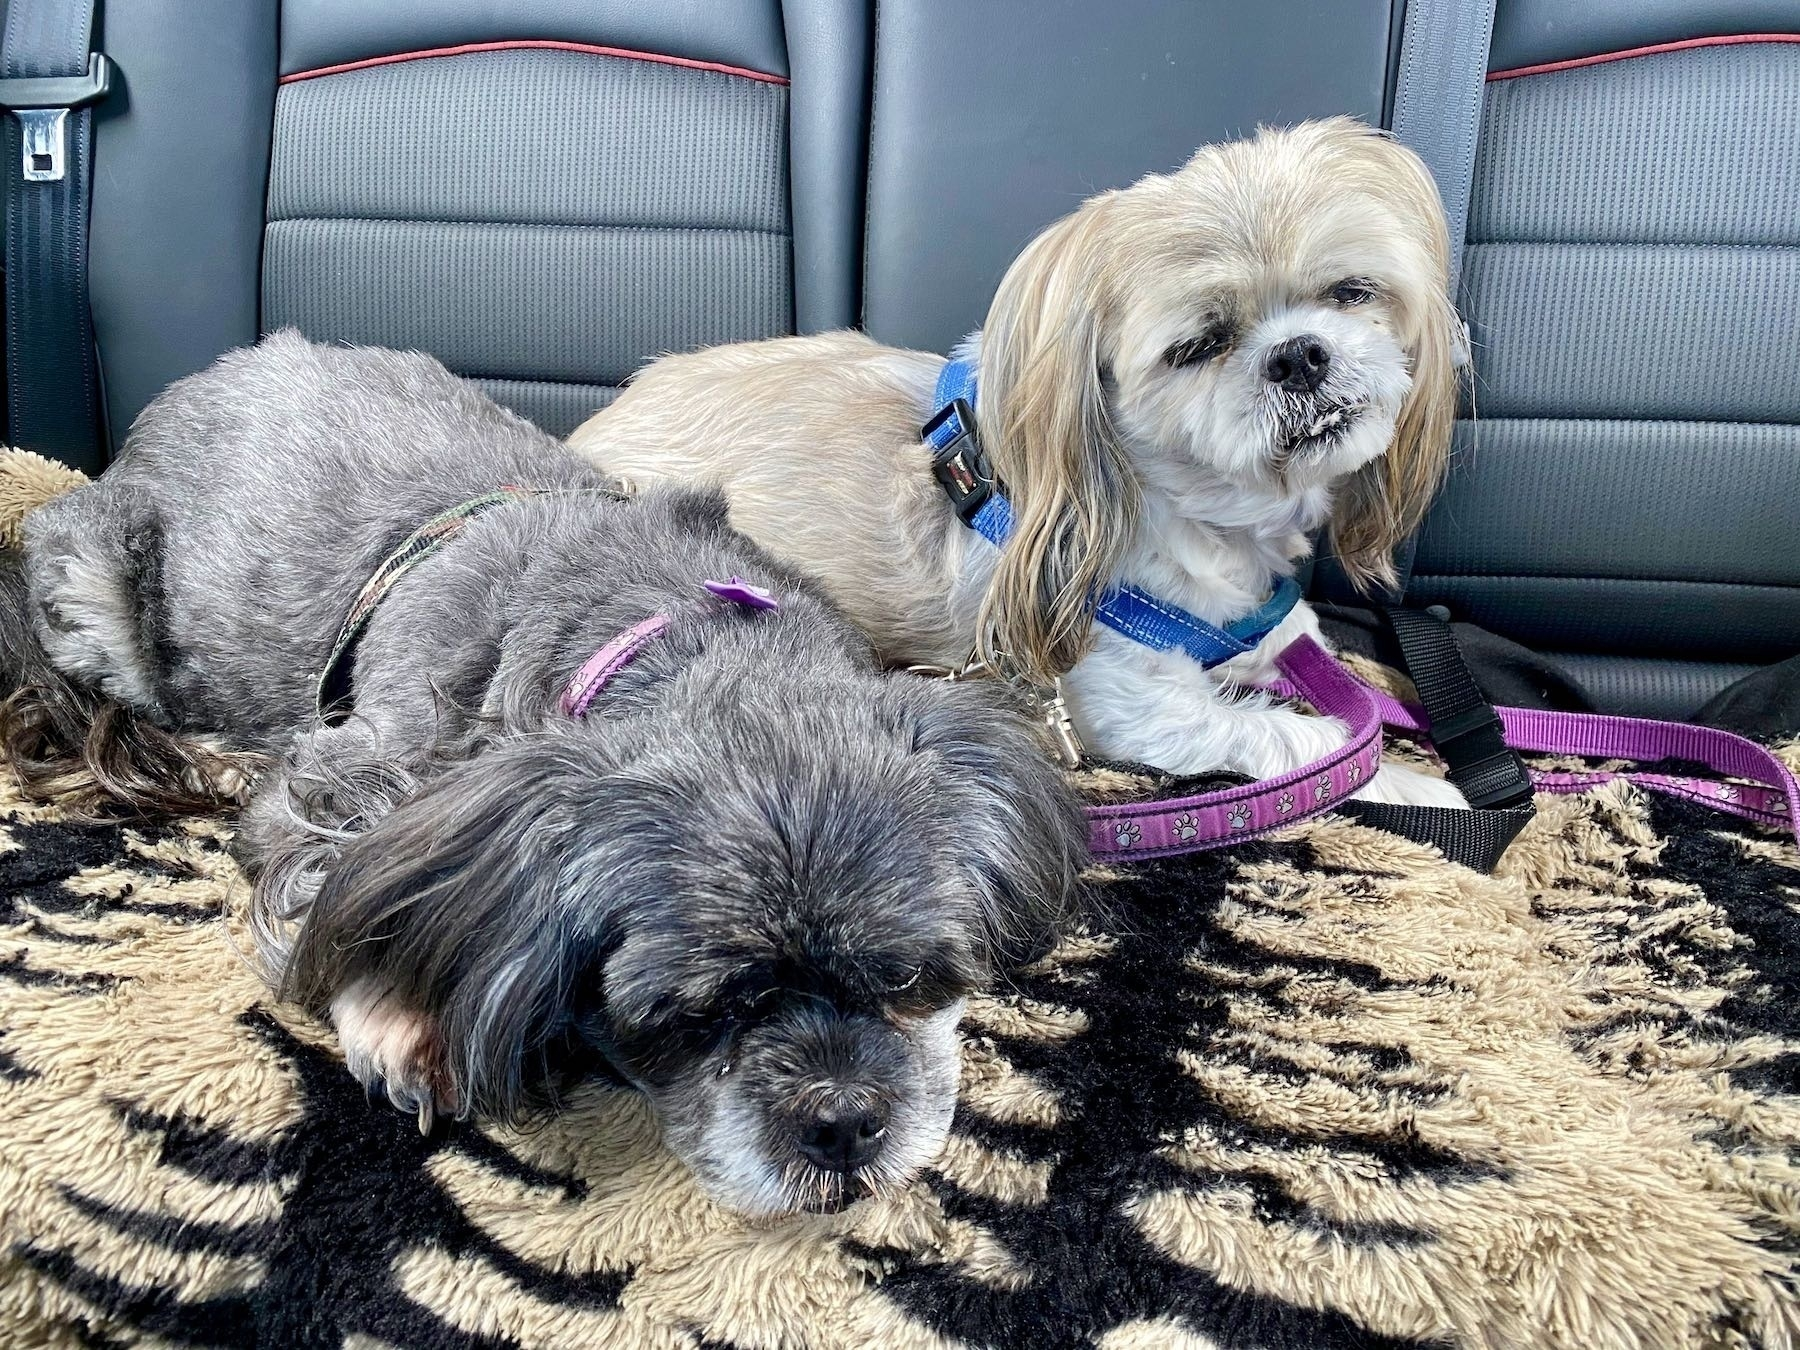 Two small dogs in a car.